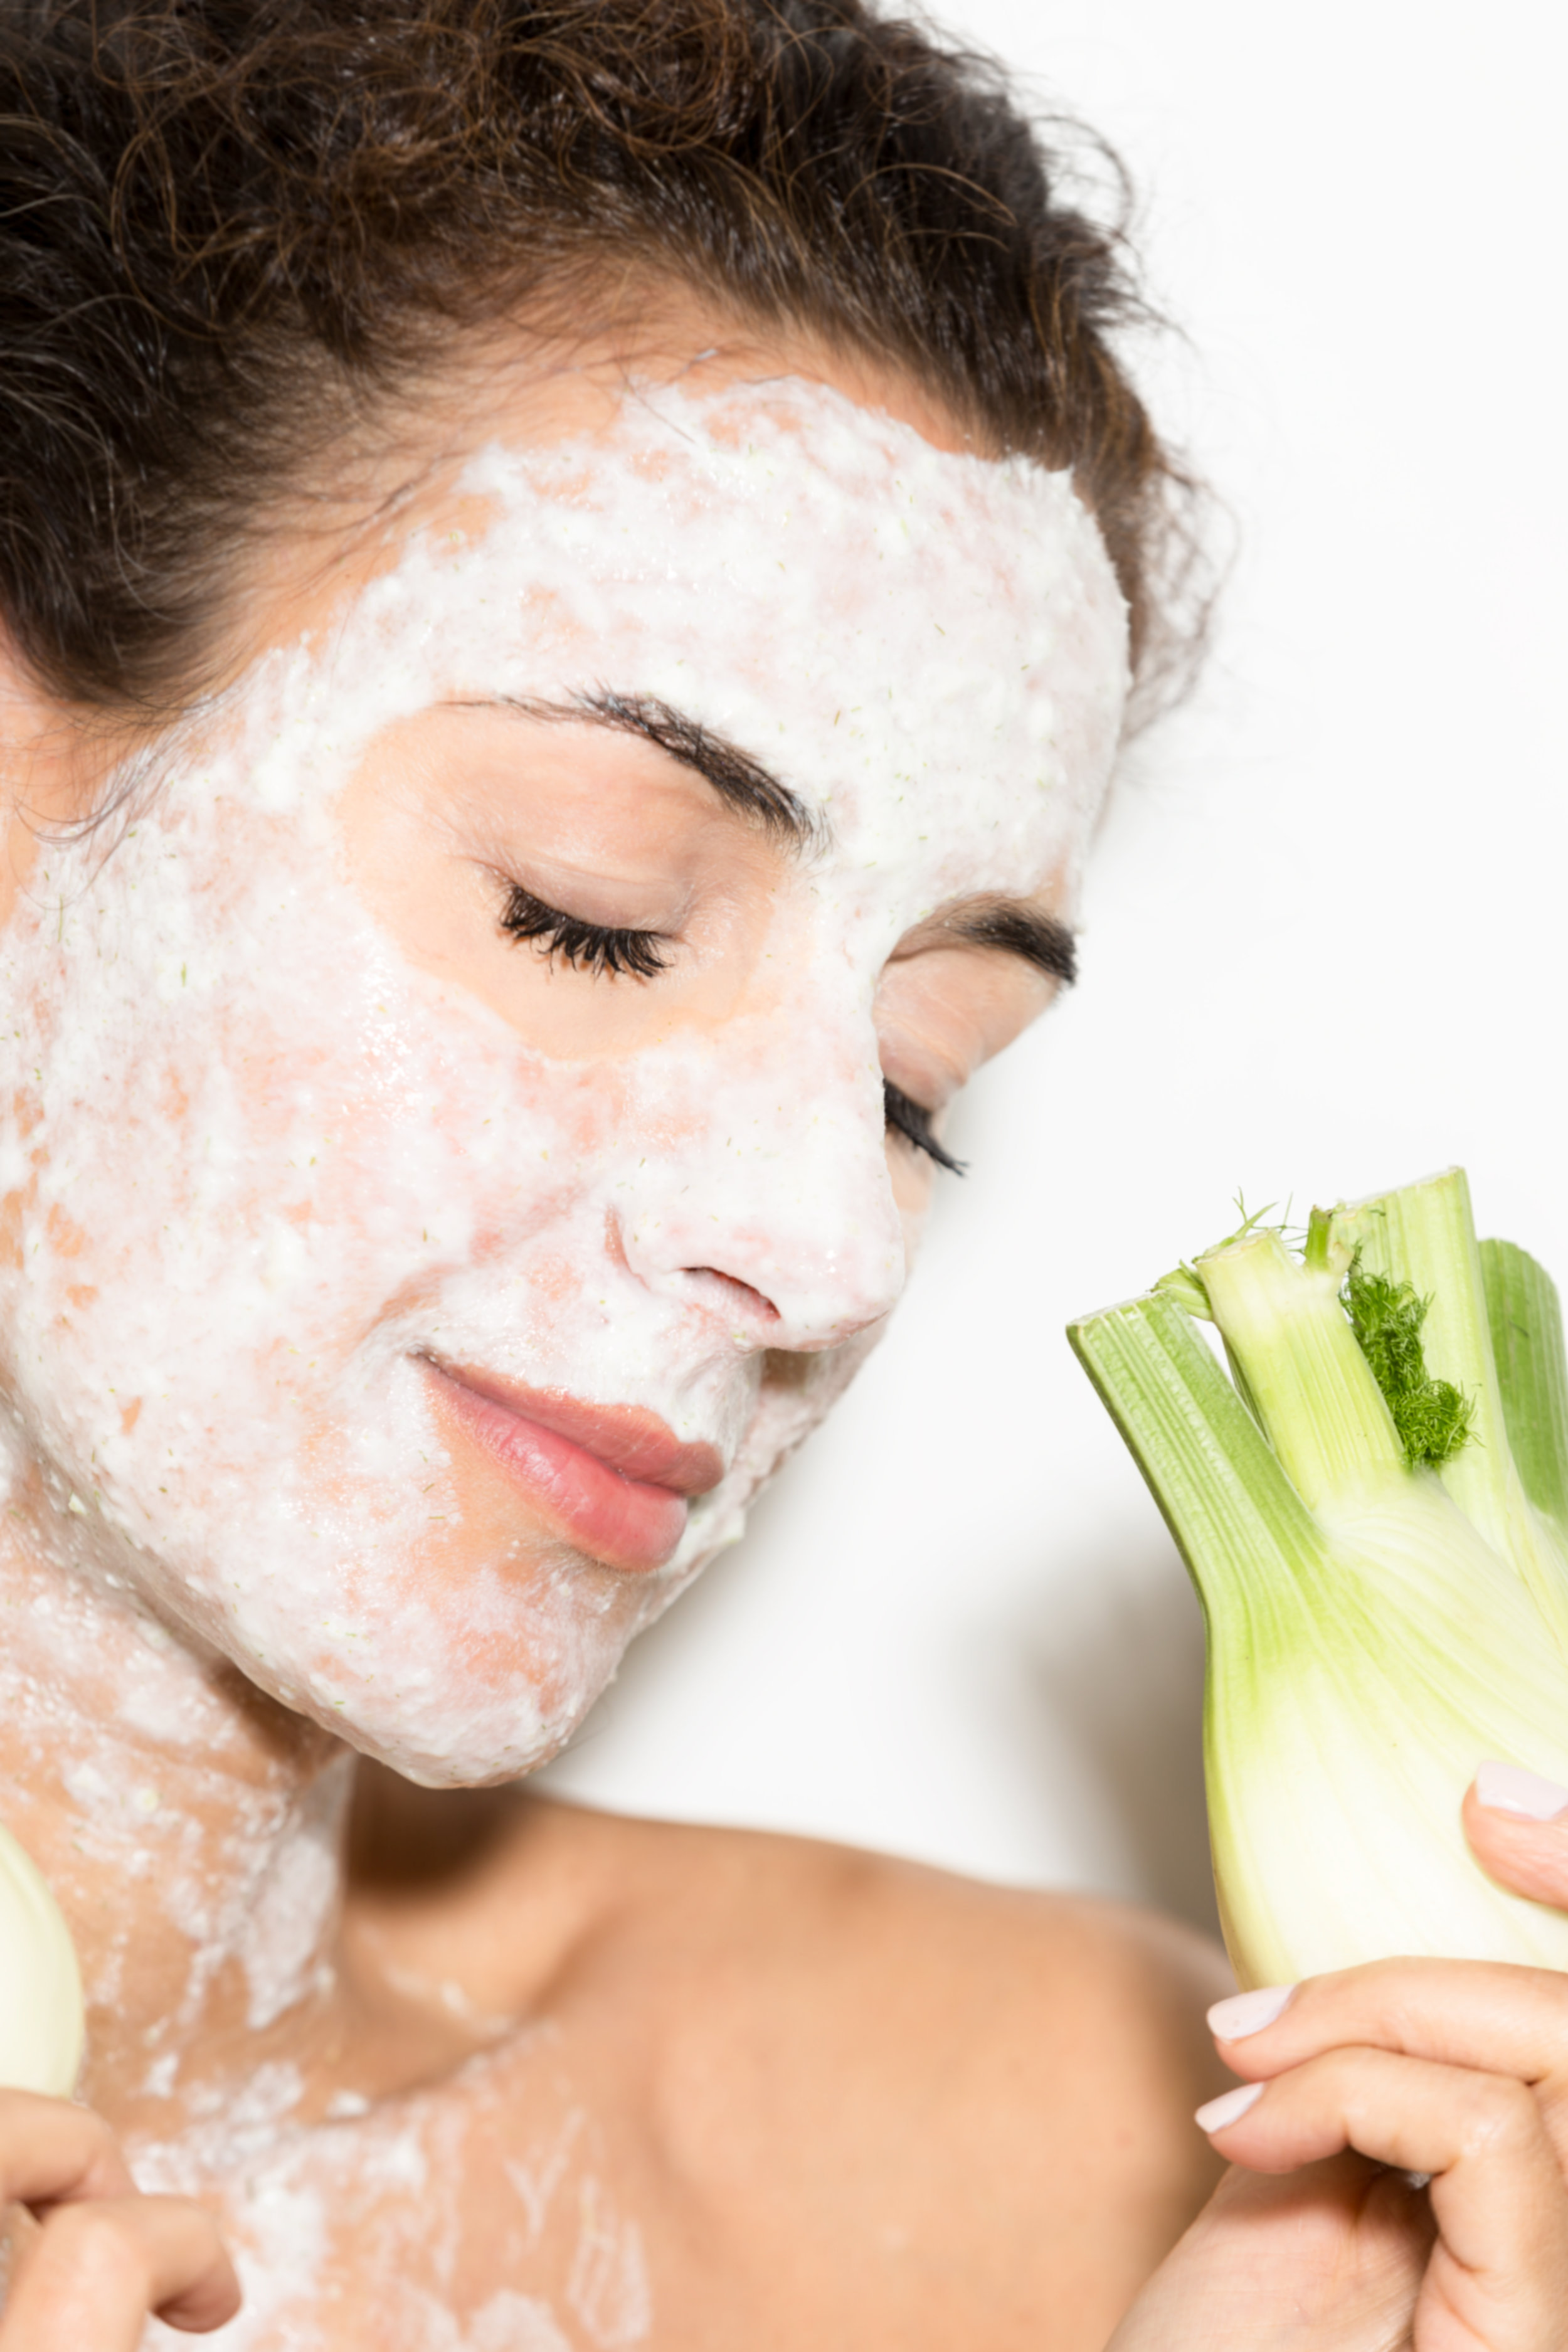 2 FACE MASK FOR REDUCING FINE LINES & WRINKLES   - DECEMBER 07, 2017YOGURT The benefits of yogurt are many, but today I just want to emphasize that it improves the appearance of the skin, since it contains lactic acid, which acts as an exfoliant, attenuates wrinkles and lightens spots. Eat yogurt!... Read more